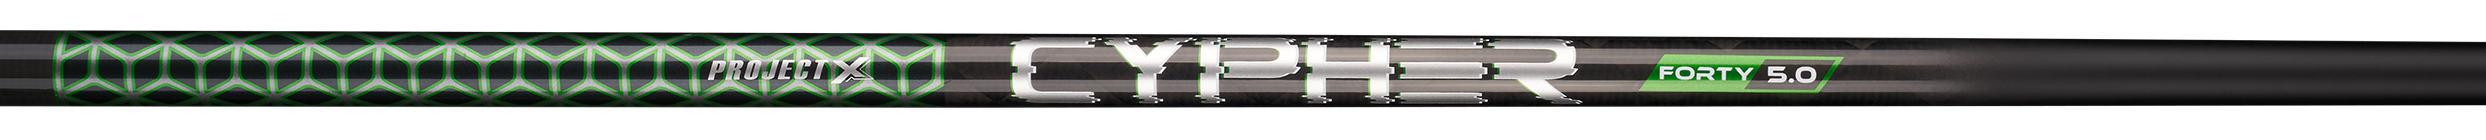 Graphite golf club shaft